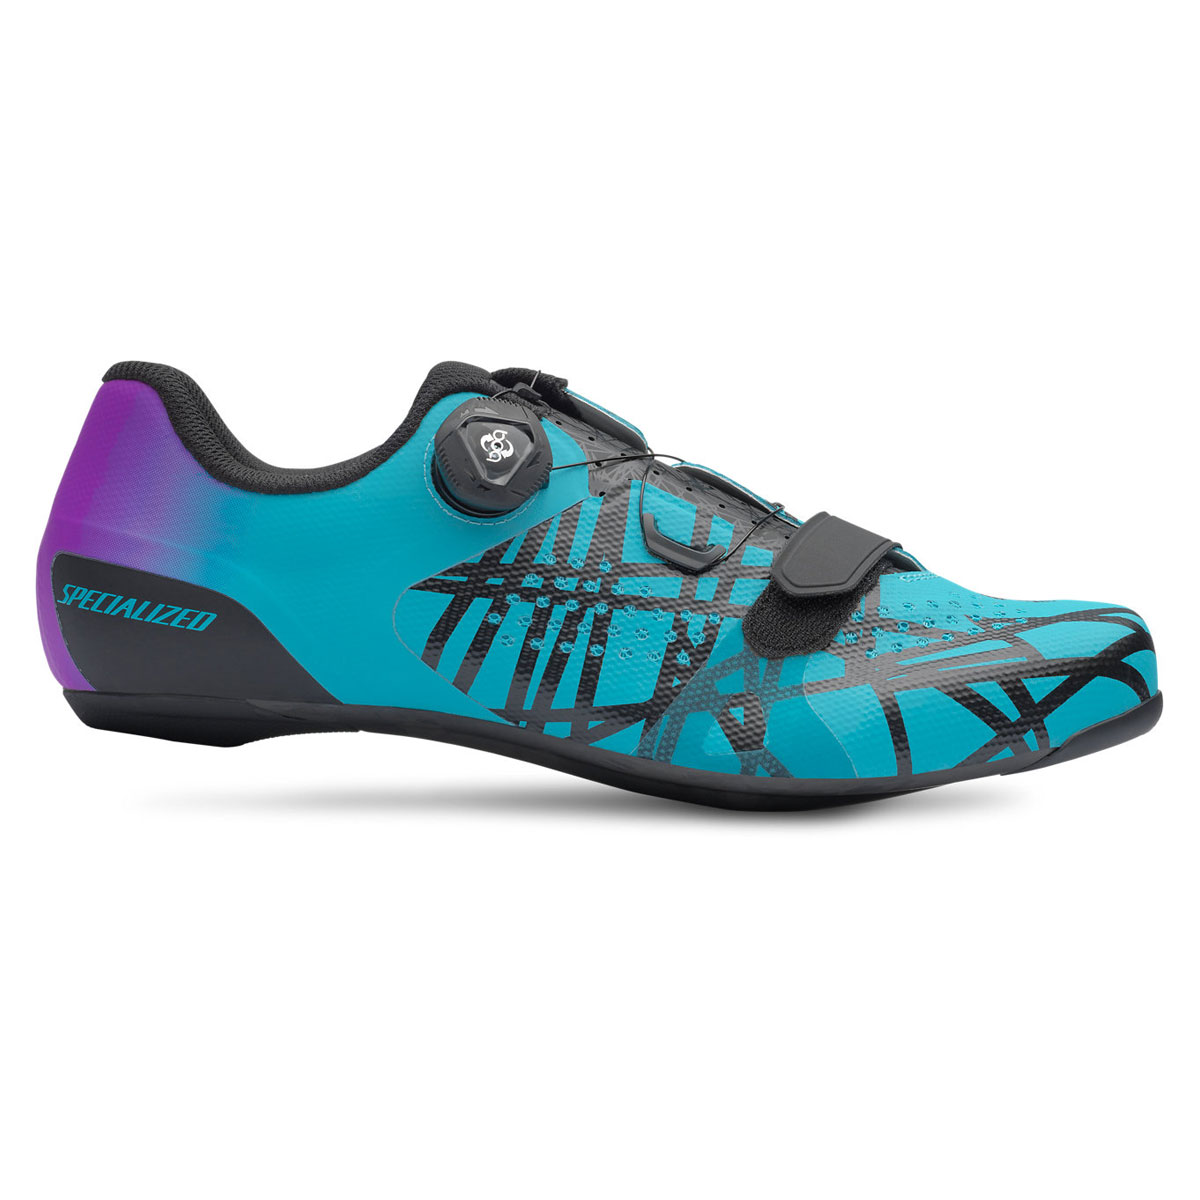 Chaussures Specialized Torch 2.0 Femme Collection Mixtape BLEU VIOLET